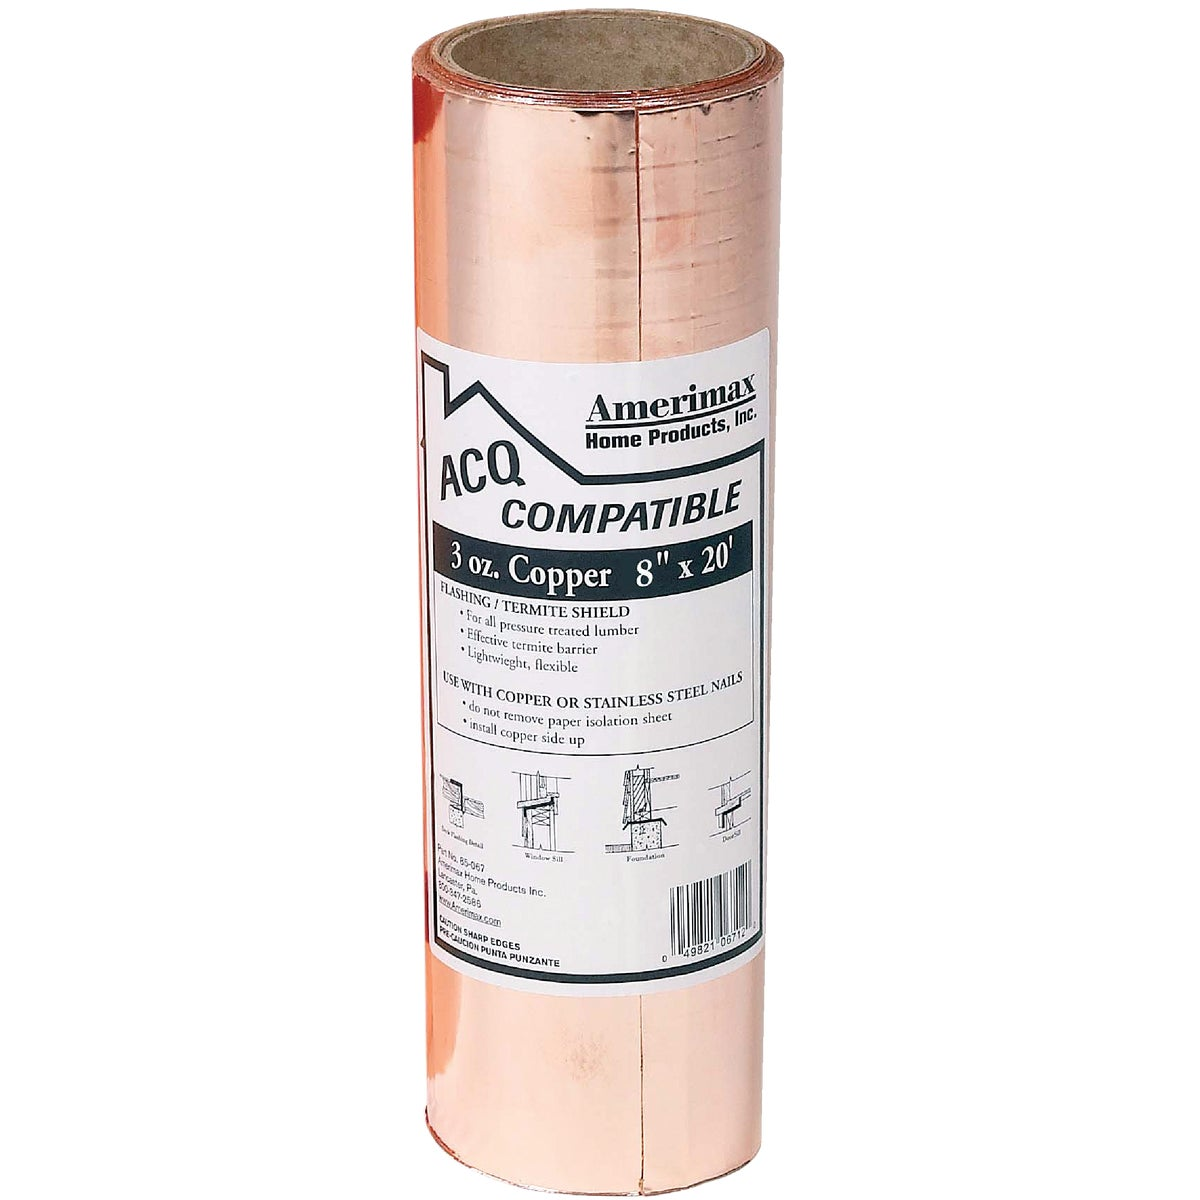 8X20 3OZ COPPER VALLEY - 850678 by Amerimax Home Prod